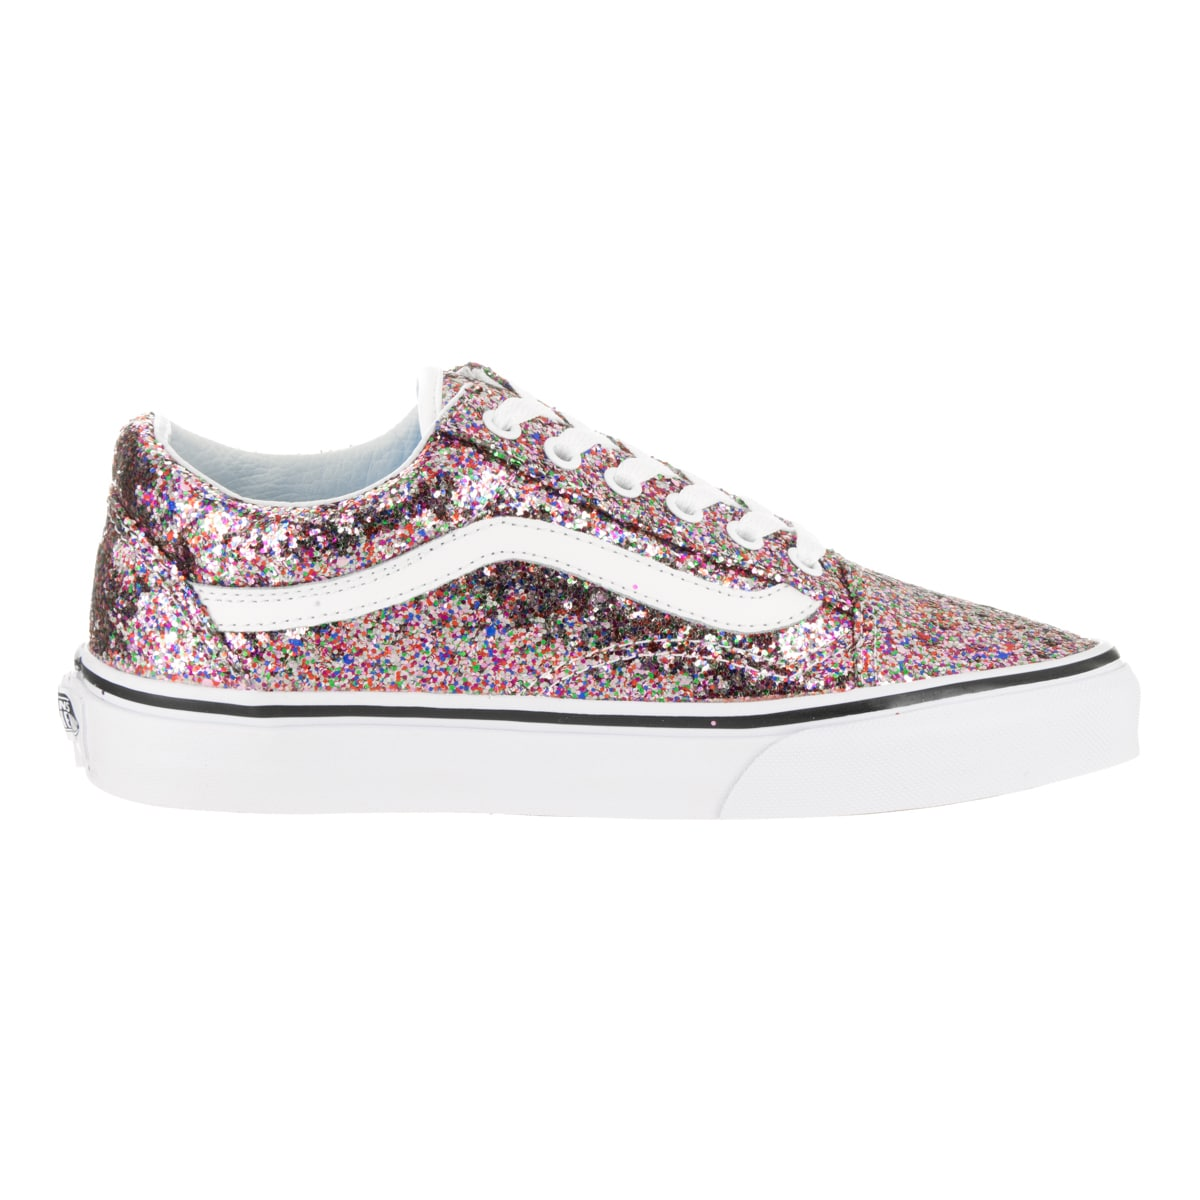 e728af2173 Shop Vans Unisex Old Skool True White and Multicolor Chunky Glitter Skate  Shoes - Free Shipping Today - Overstock - 13312163